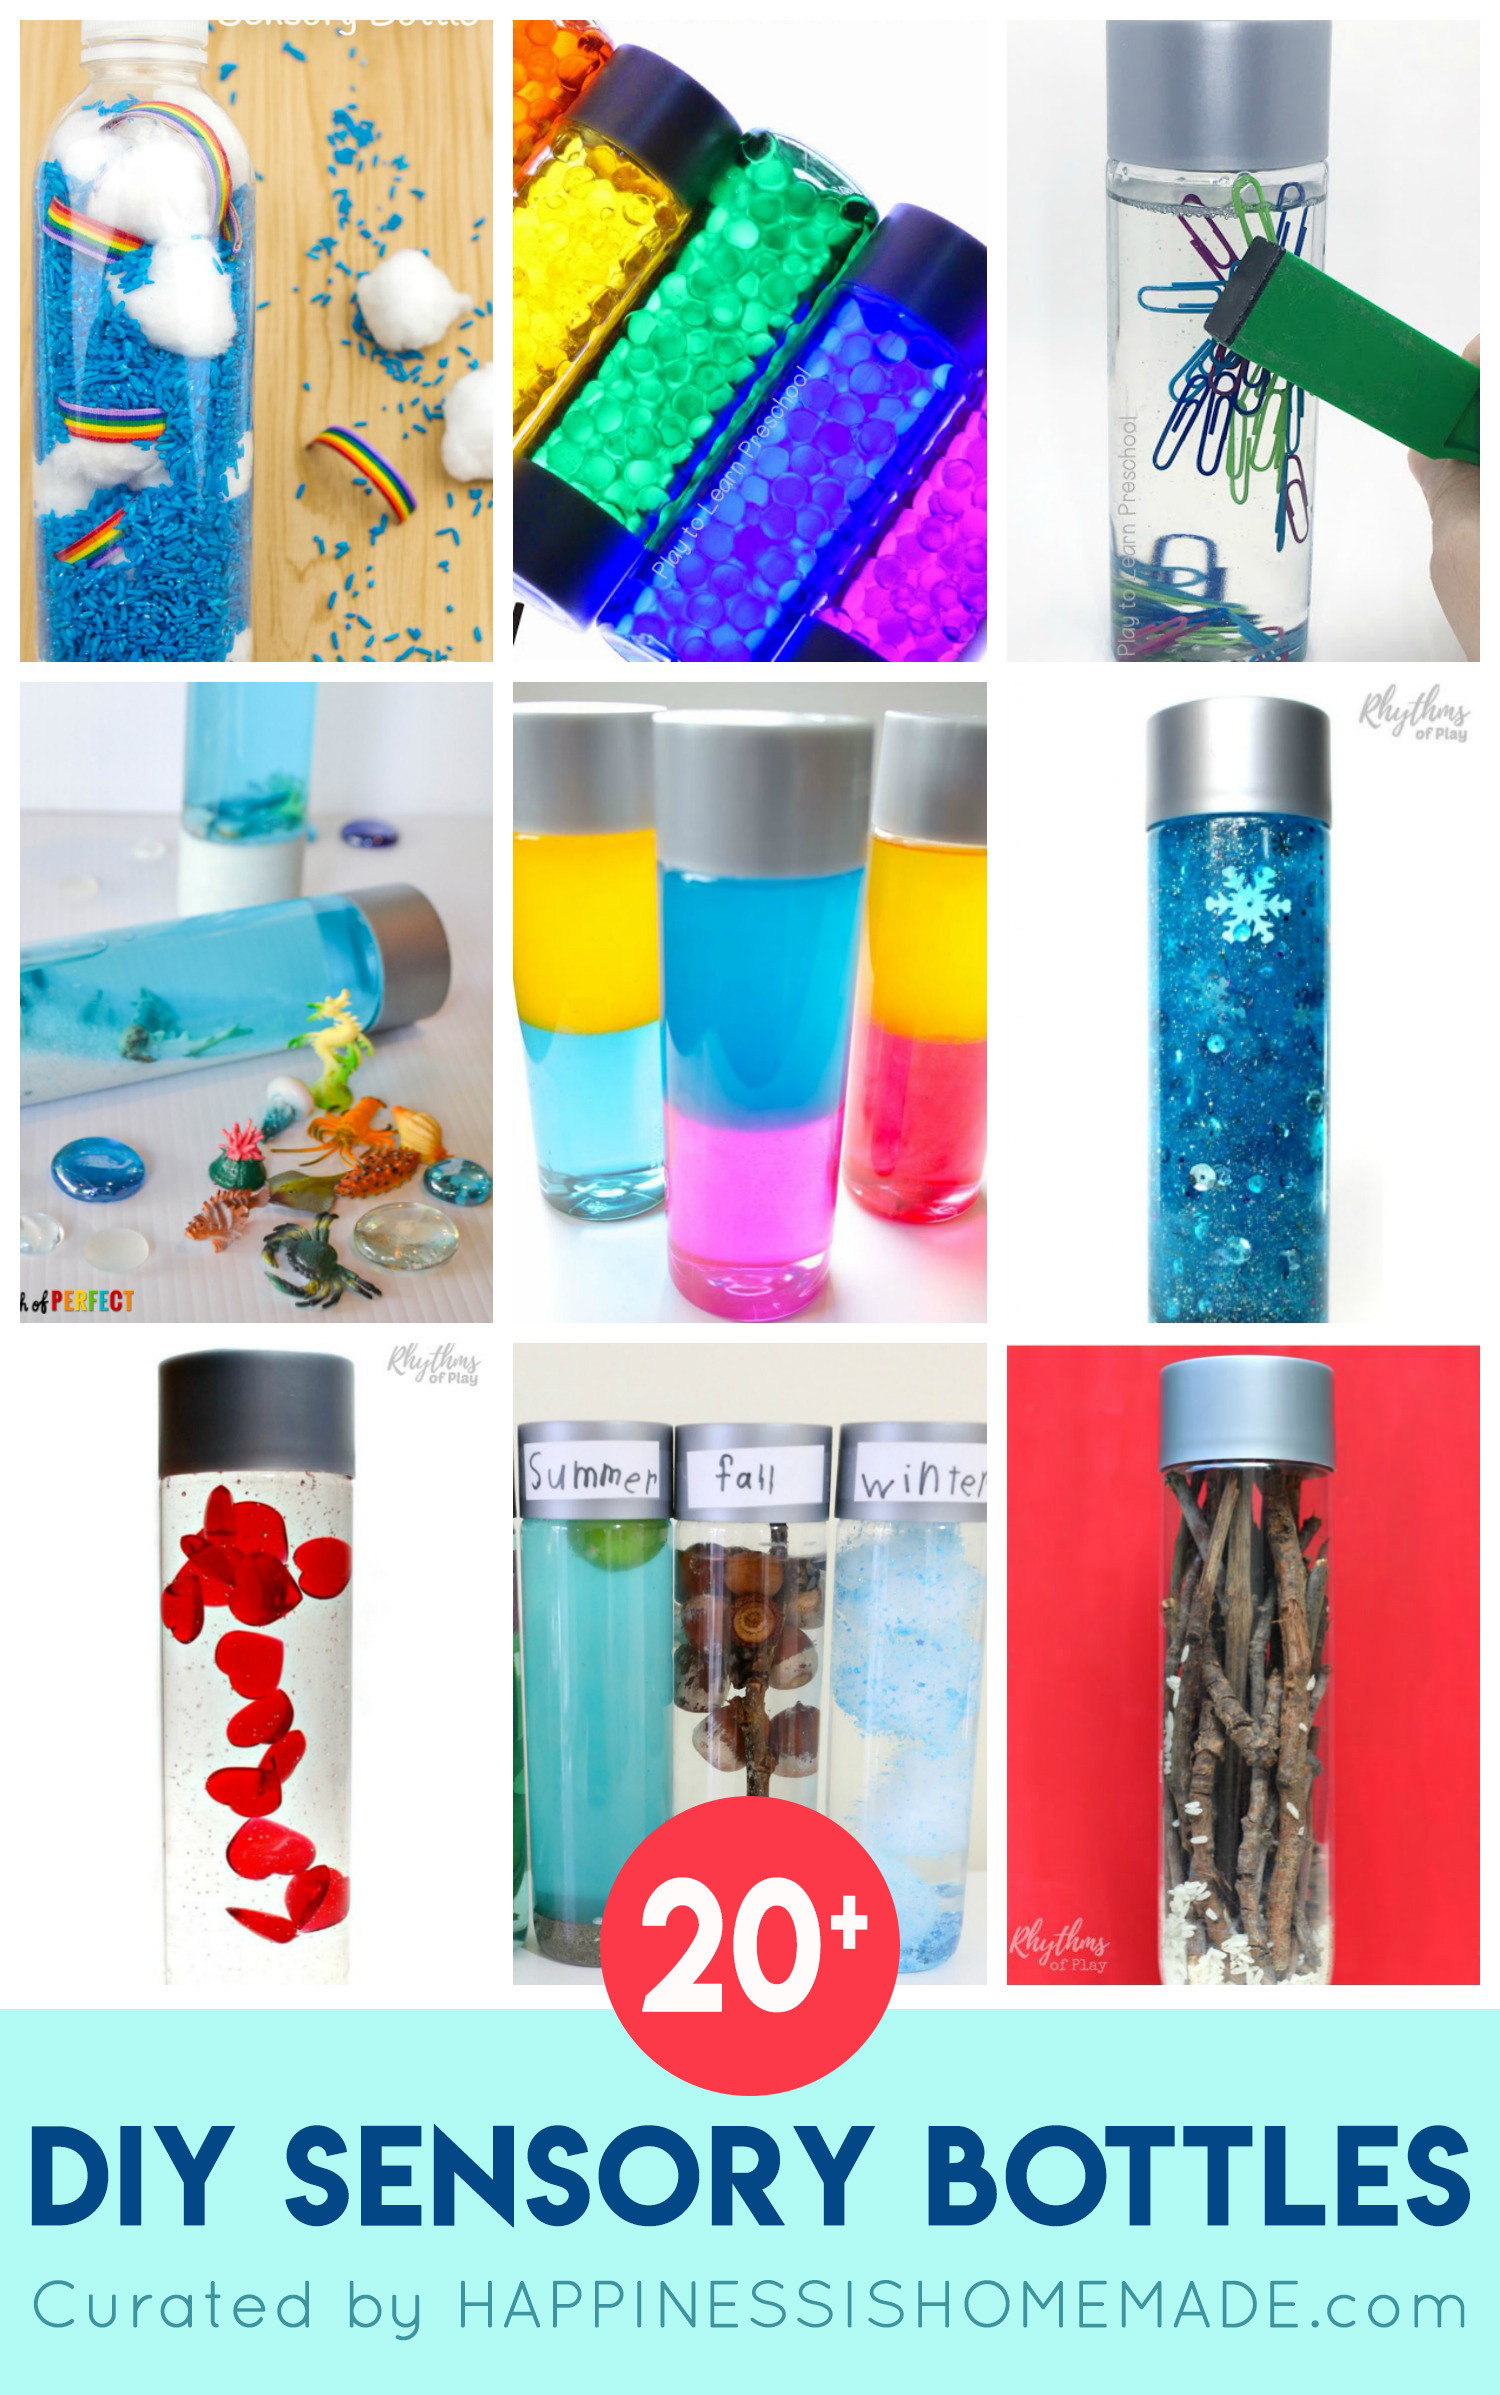 Best ideas about DIY Sensory Bottles . Save or Pin DIY Sensory Bottles for Kids Happiness is Homemade Now.